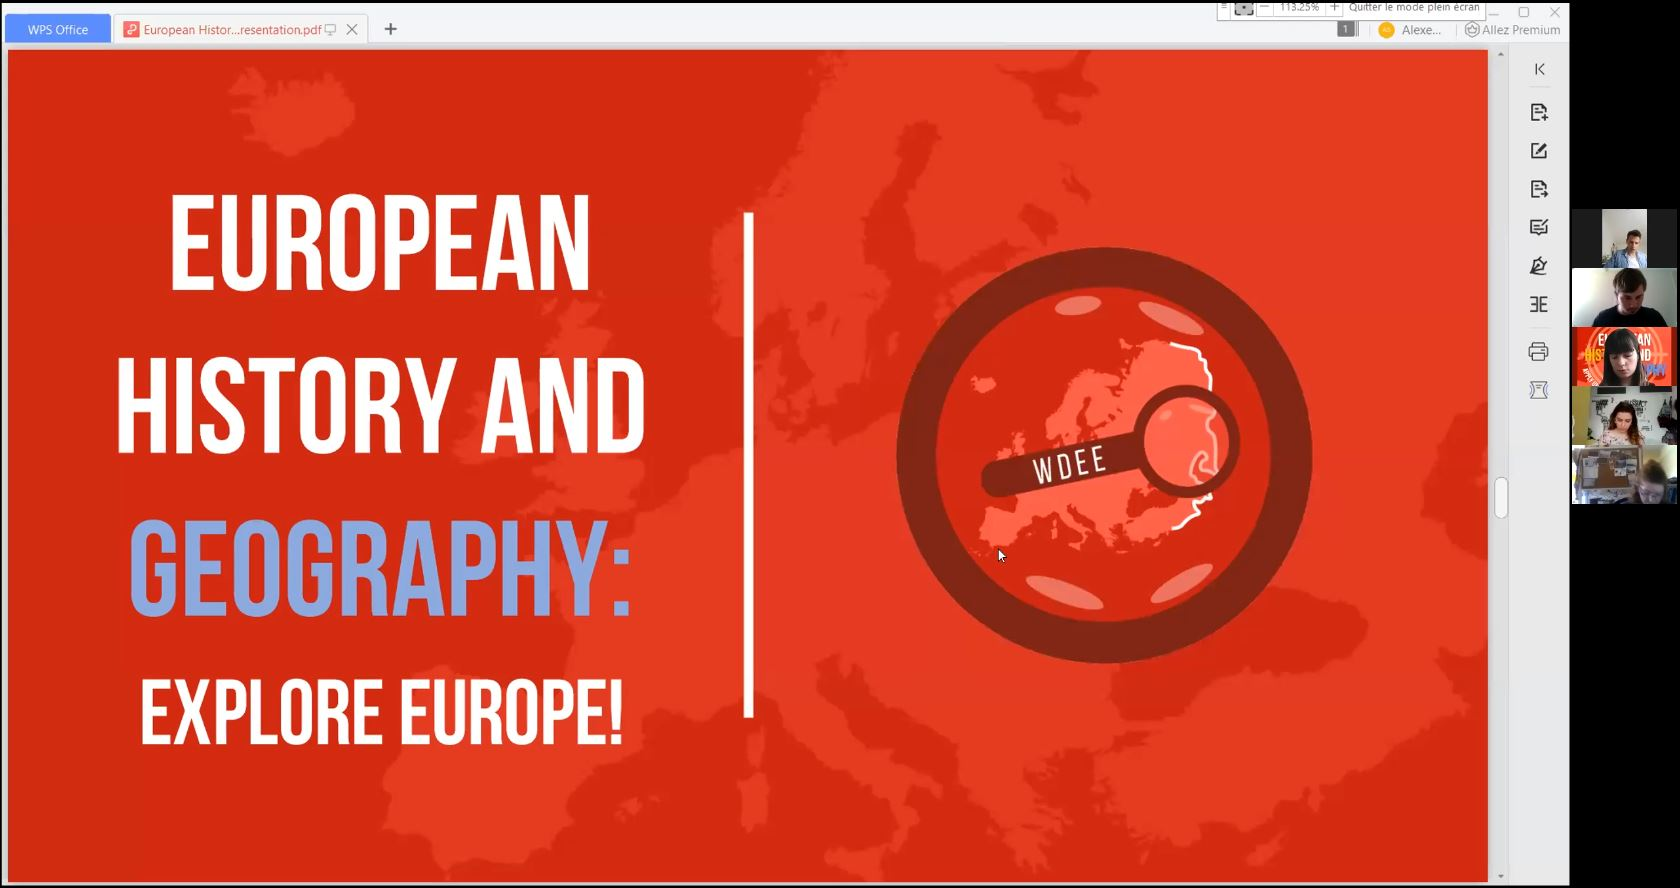 Exploring Europe through history and geography!